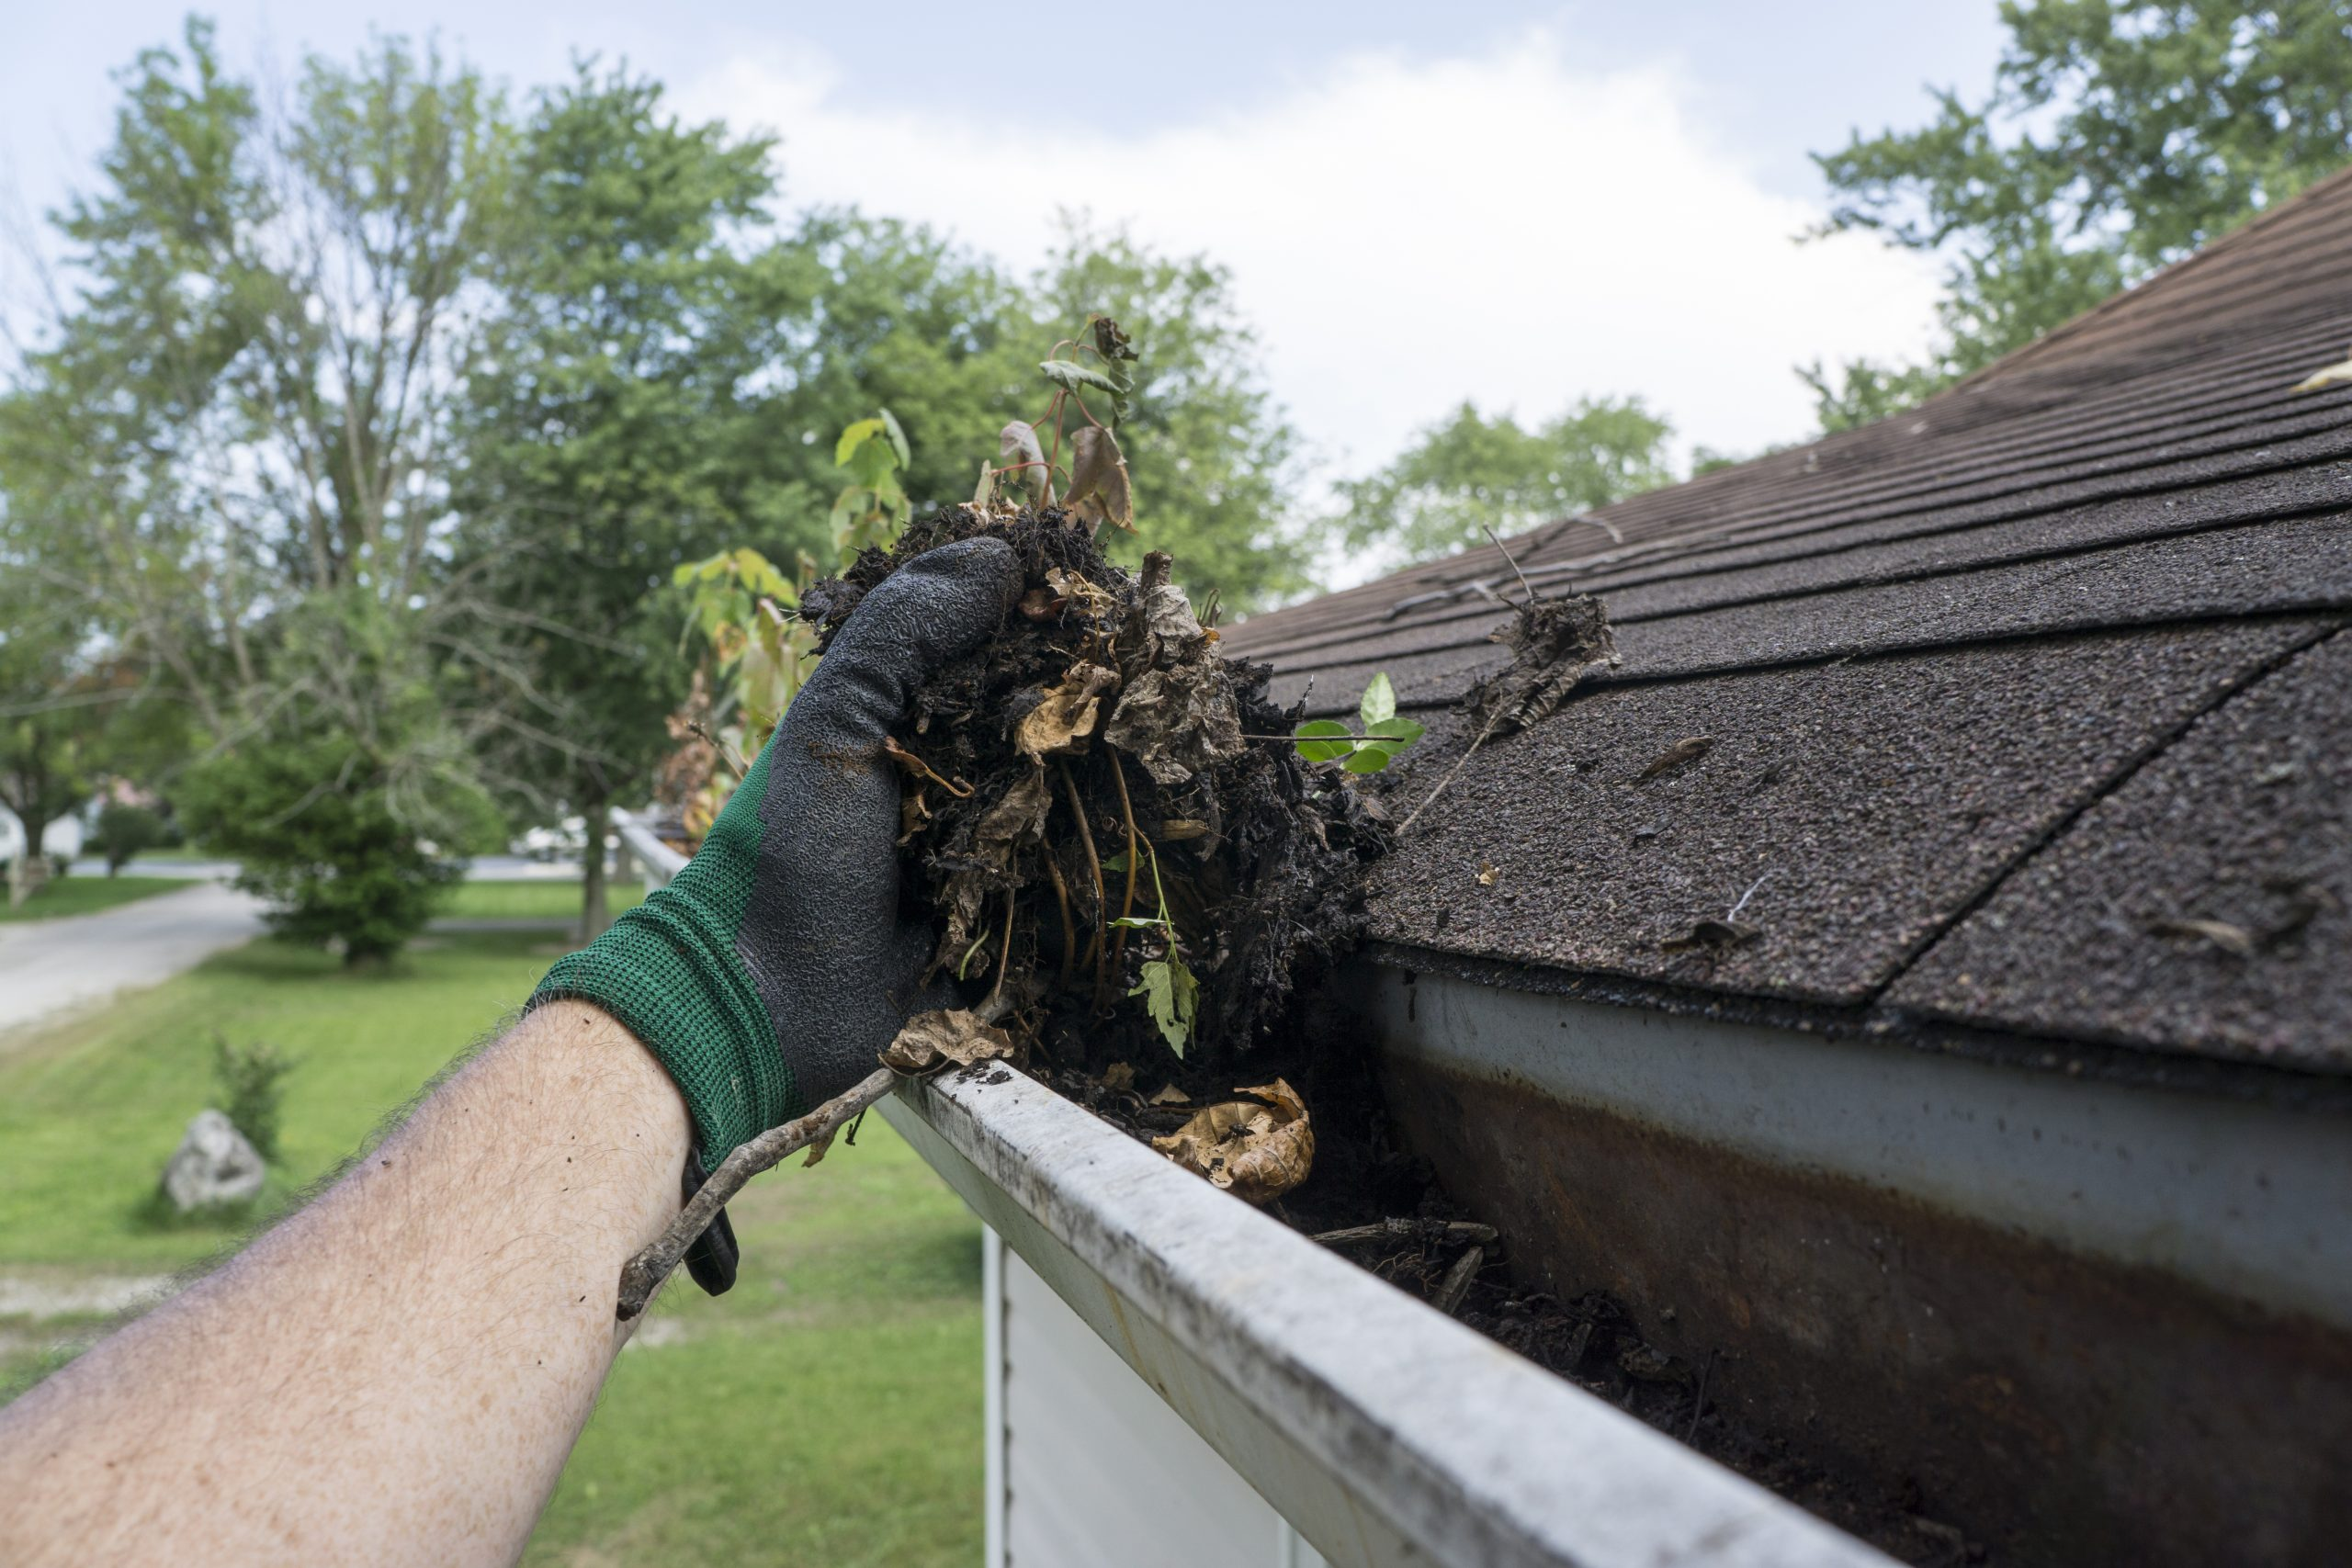 professional gutter cleaning service edwardsville maryville glen carbon troy illinois il